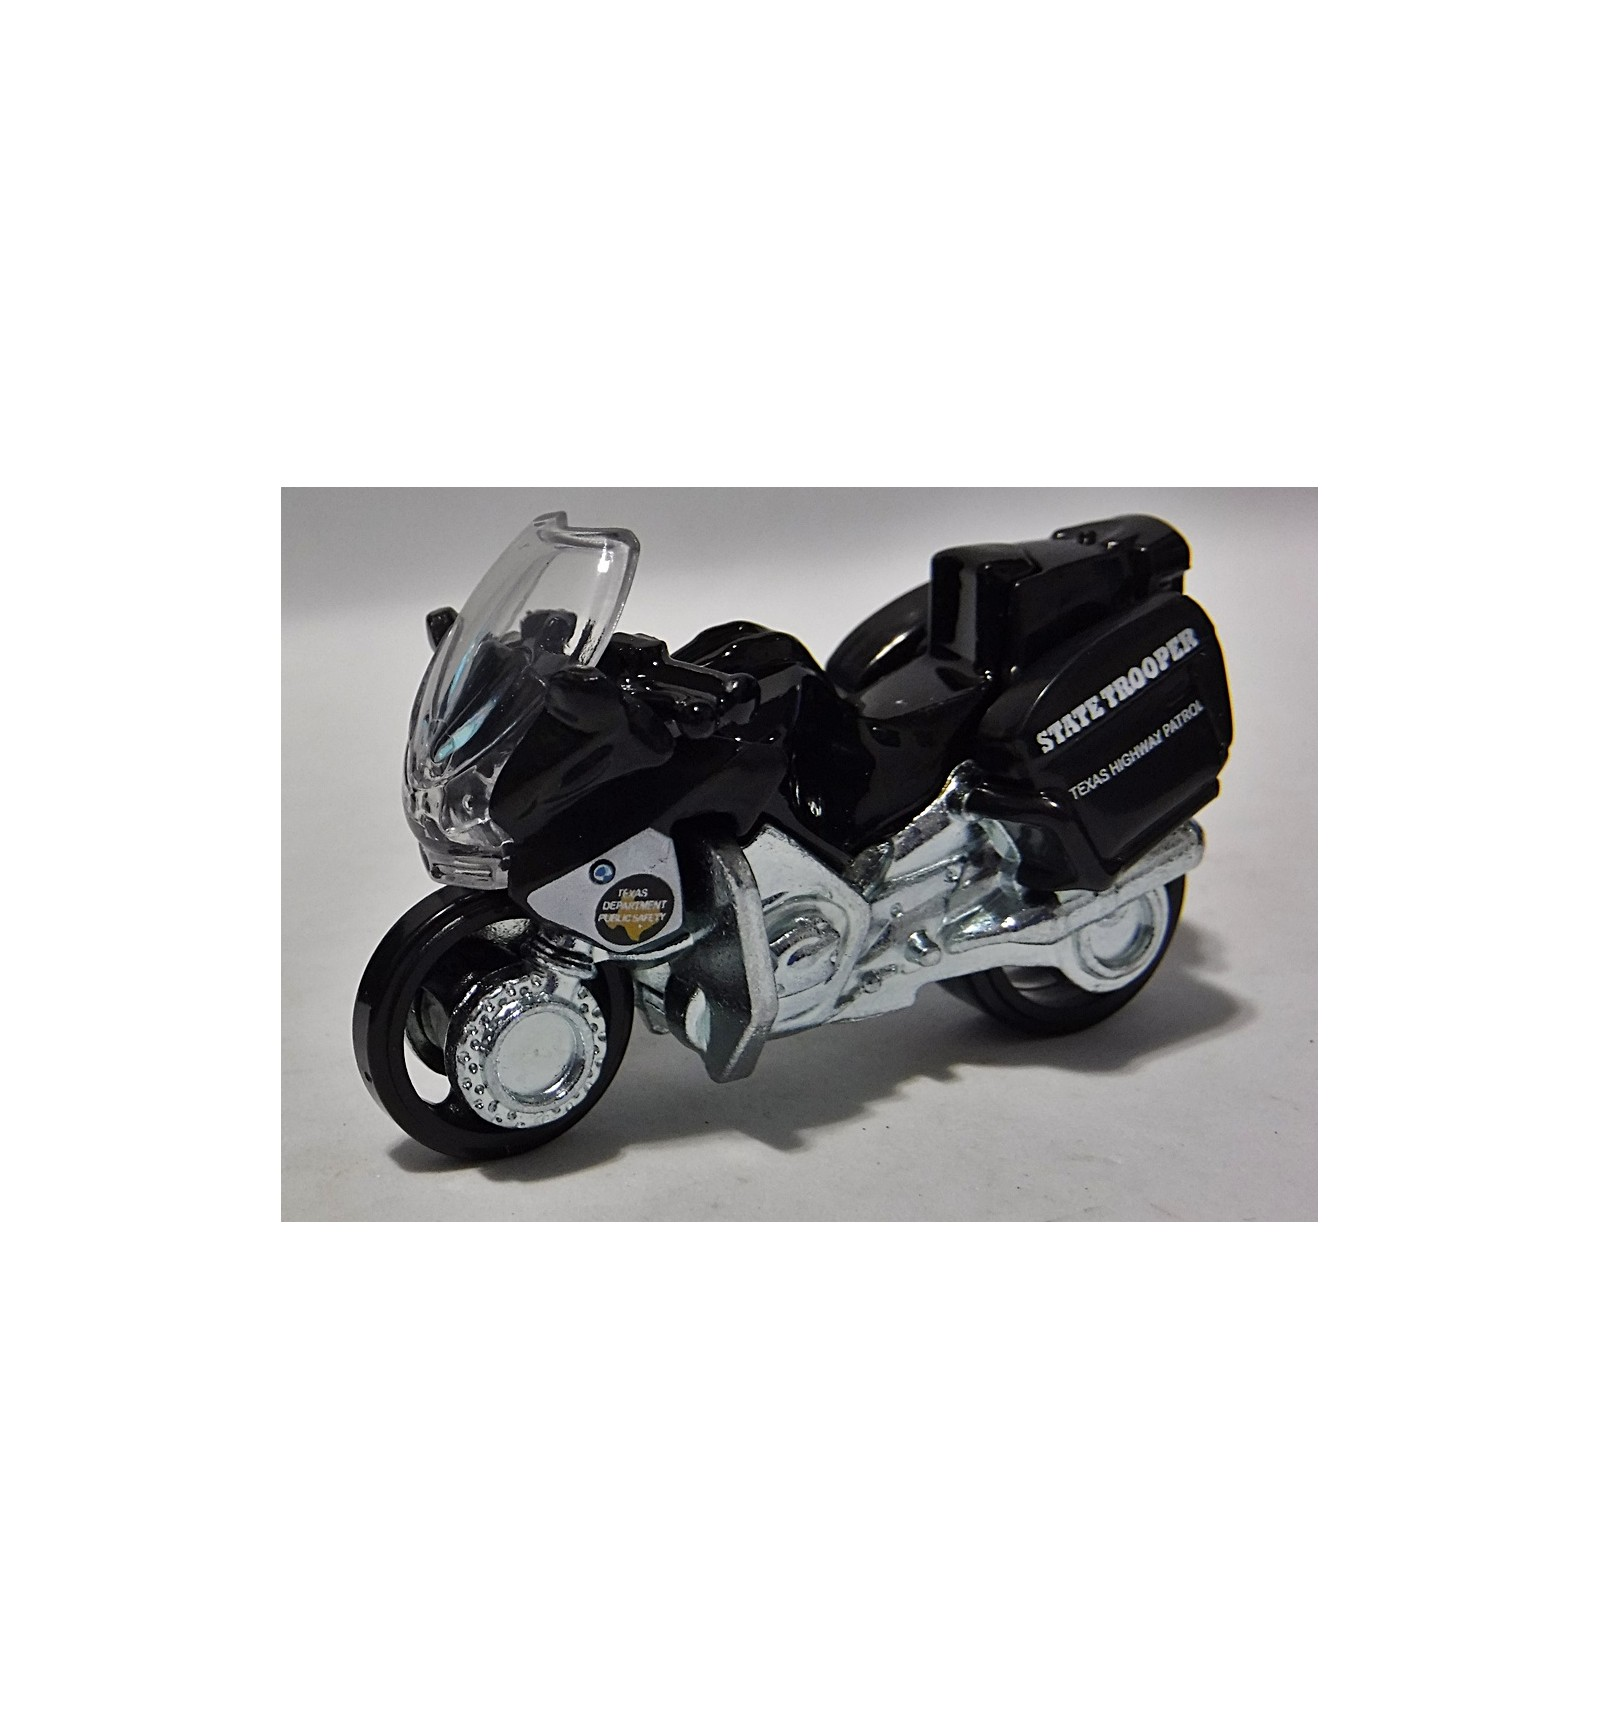 hight resolution of matchbox bmw r1200 rt p texas highway patrol state trooper police motorcycle